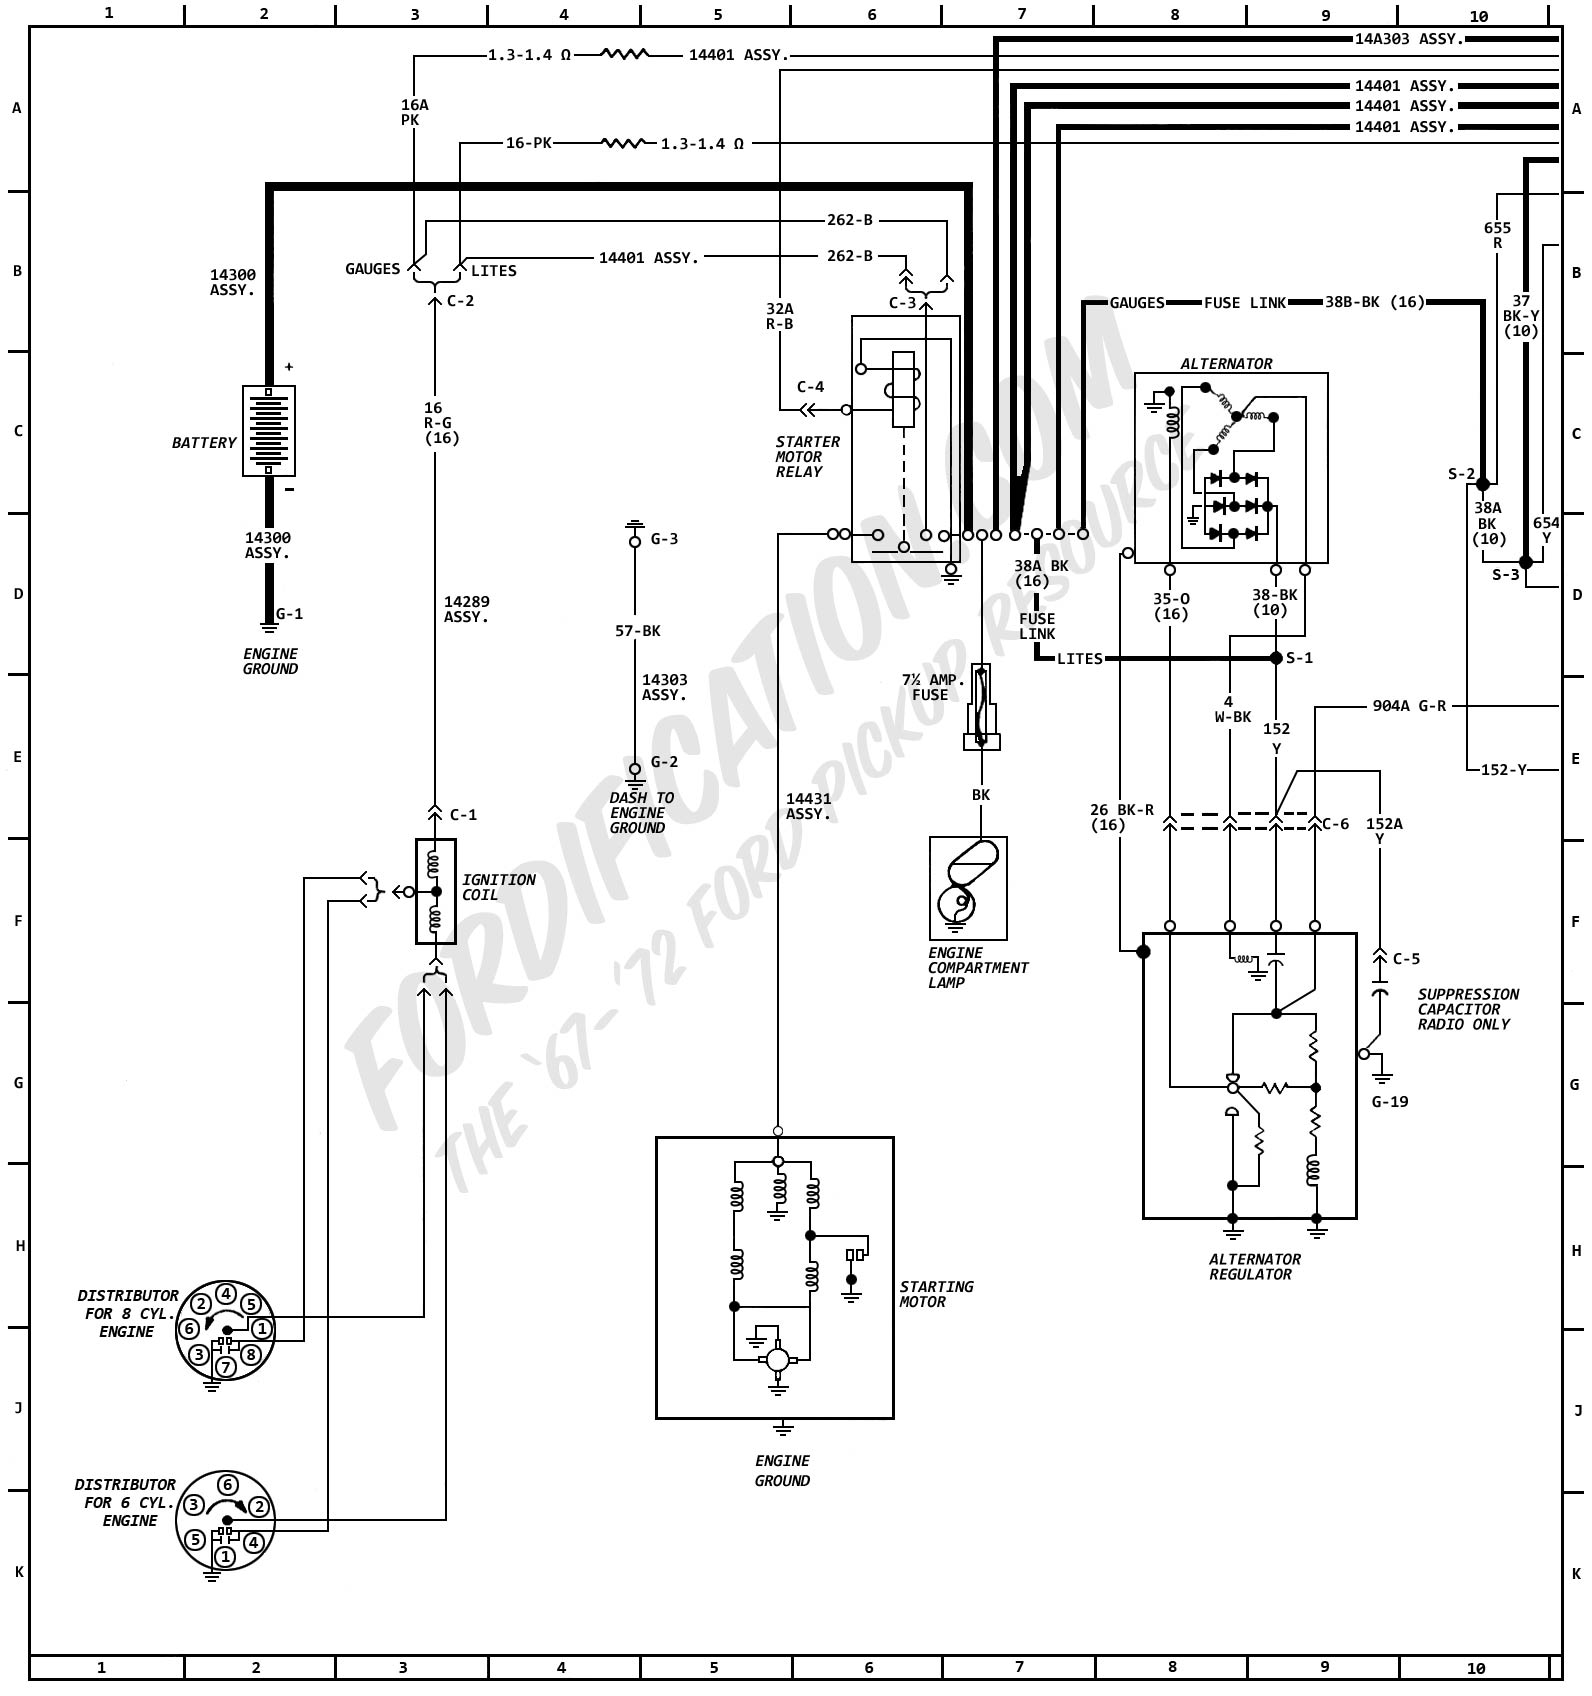 1972 F250 Wiring Diagram Automotive Ford Ignition F100 Schematics Library Rh 48 Yoobi De